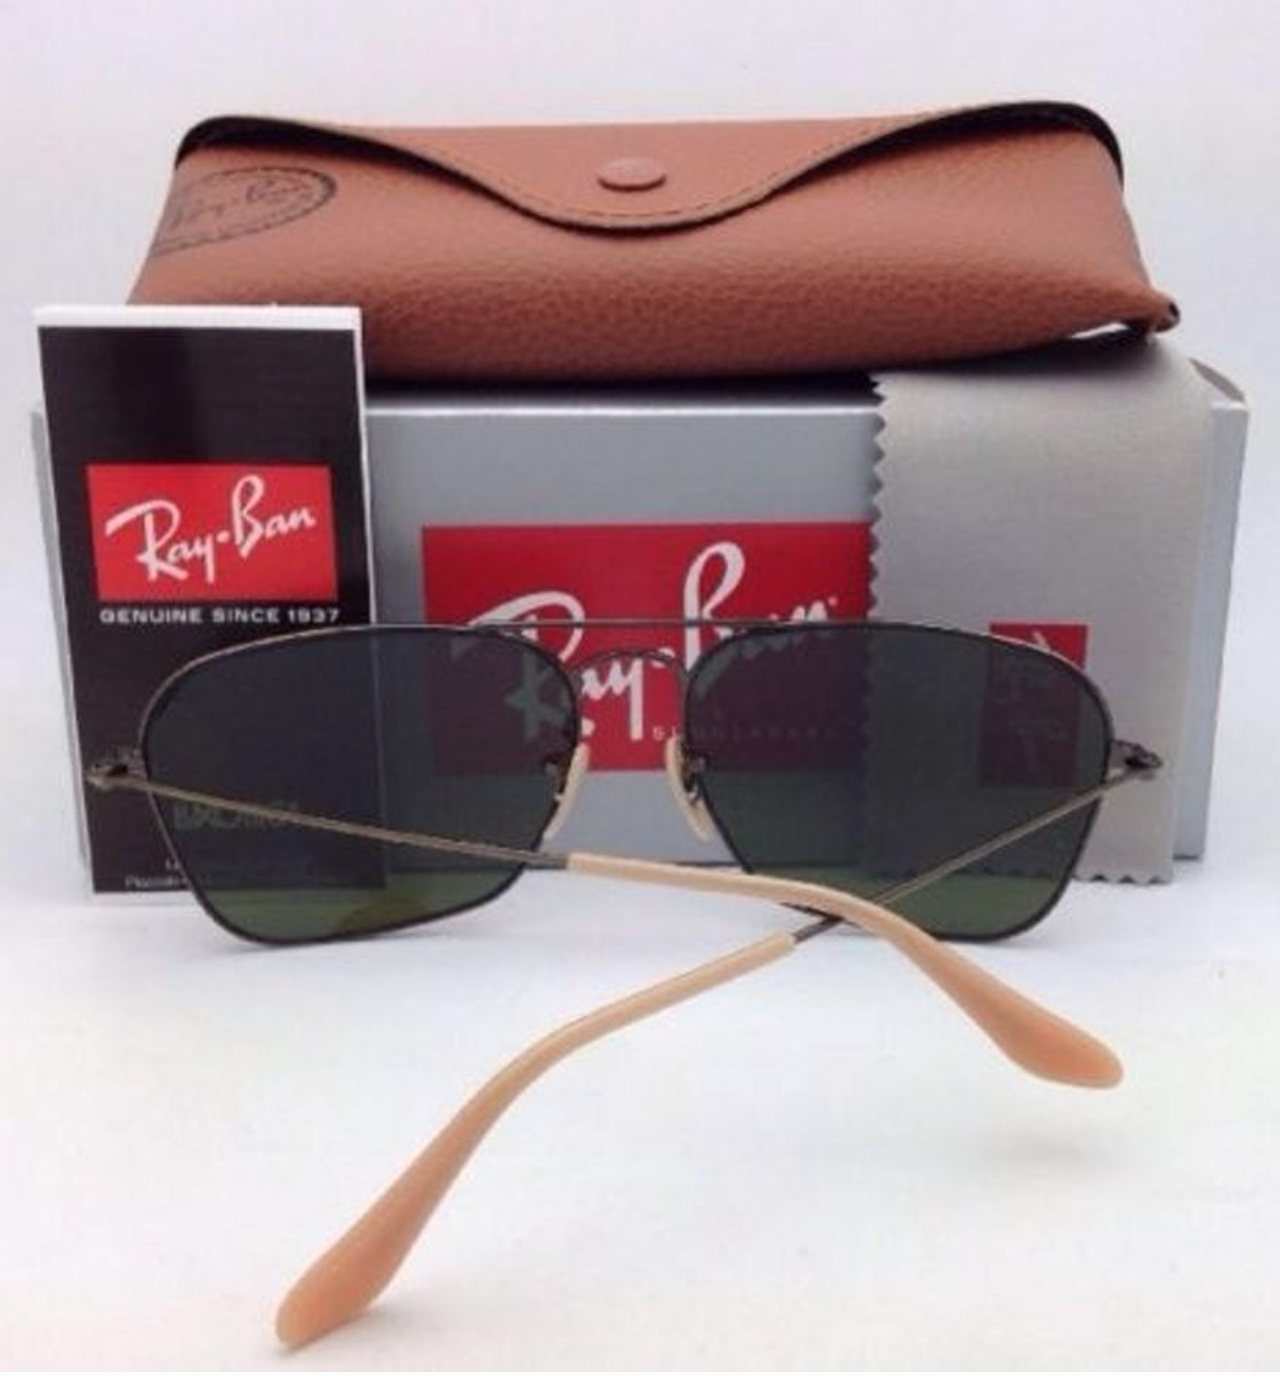 RAY-BAN Sunglasses CARAVAN RB 3136 167/4K 58-15 Bronze Aviator w/ Lilac Mirror